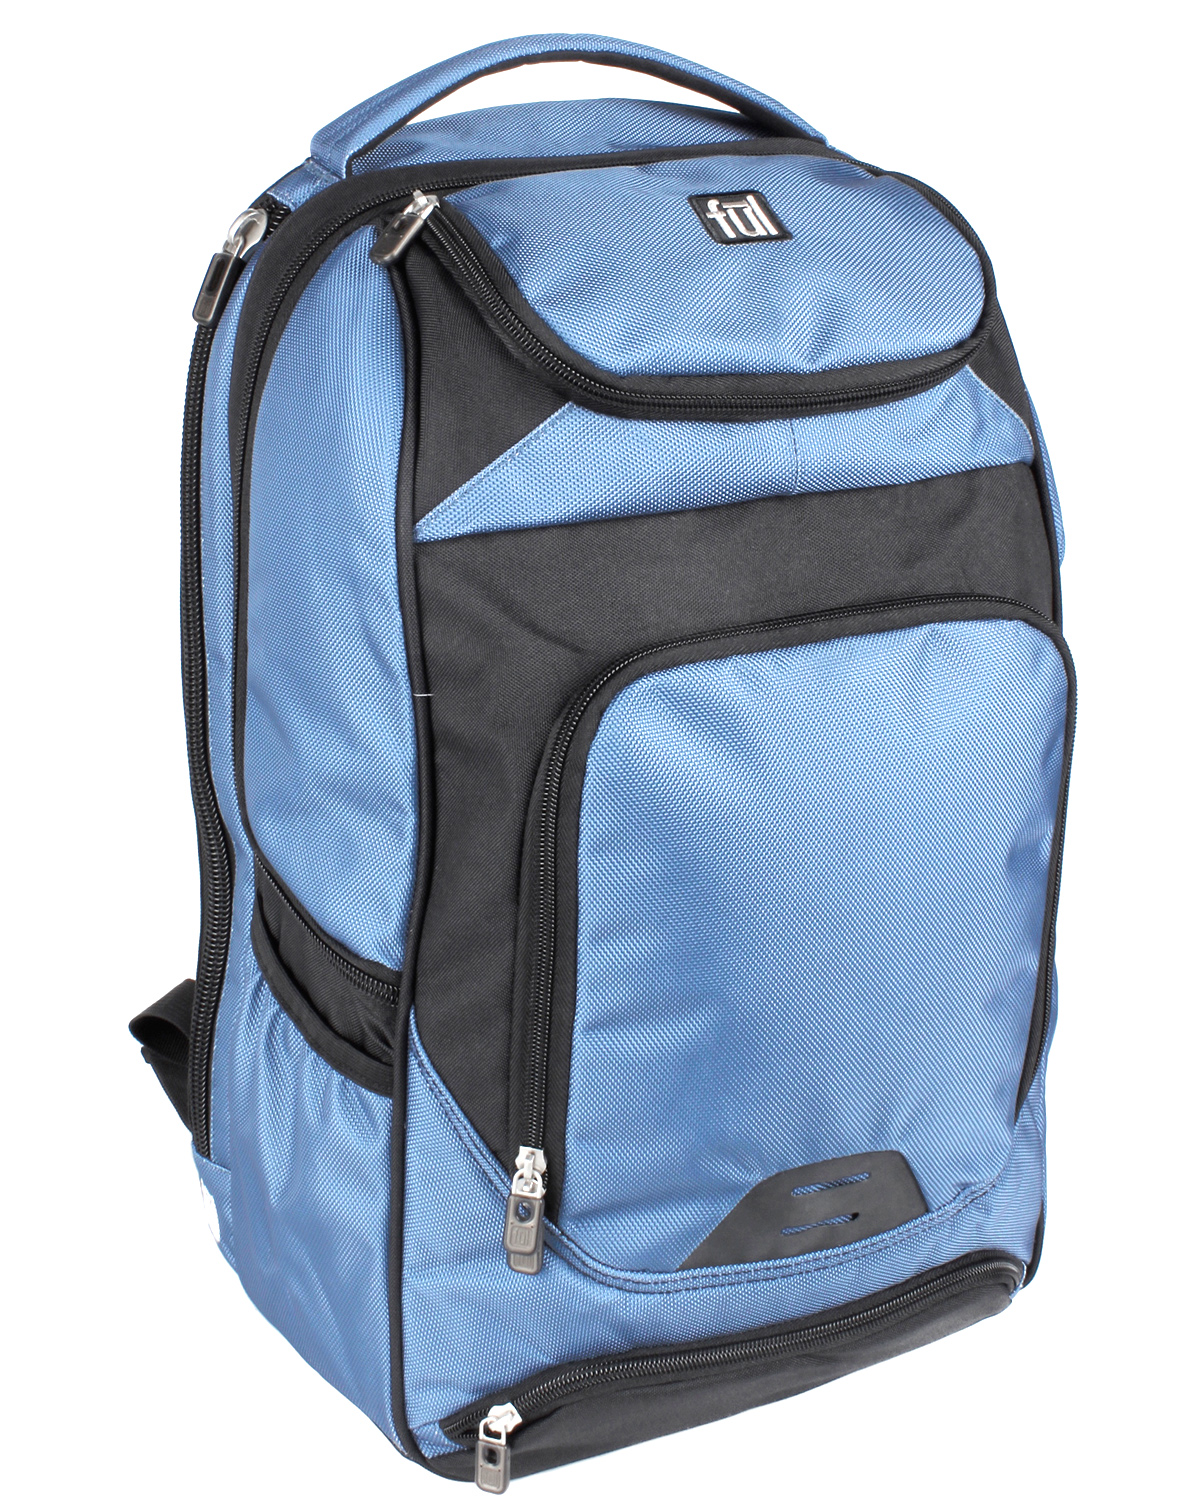 FUL BD5267 - CoreTech Live Wire Backpack